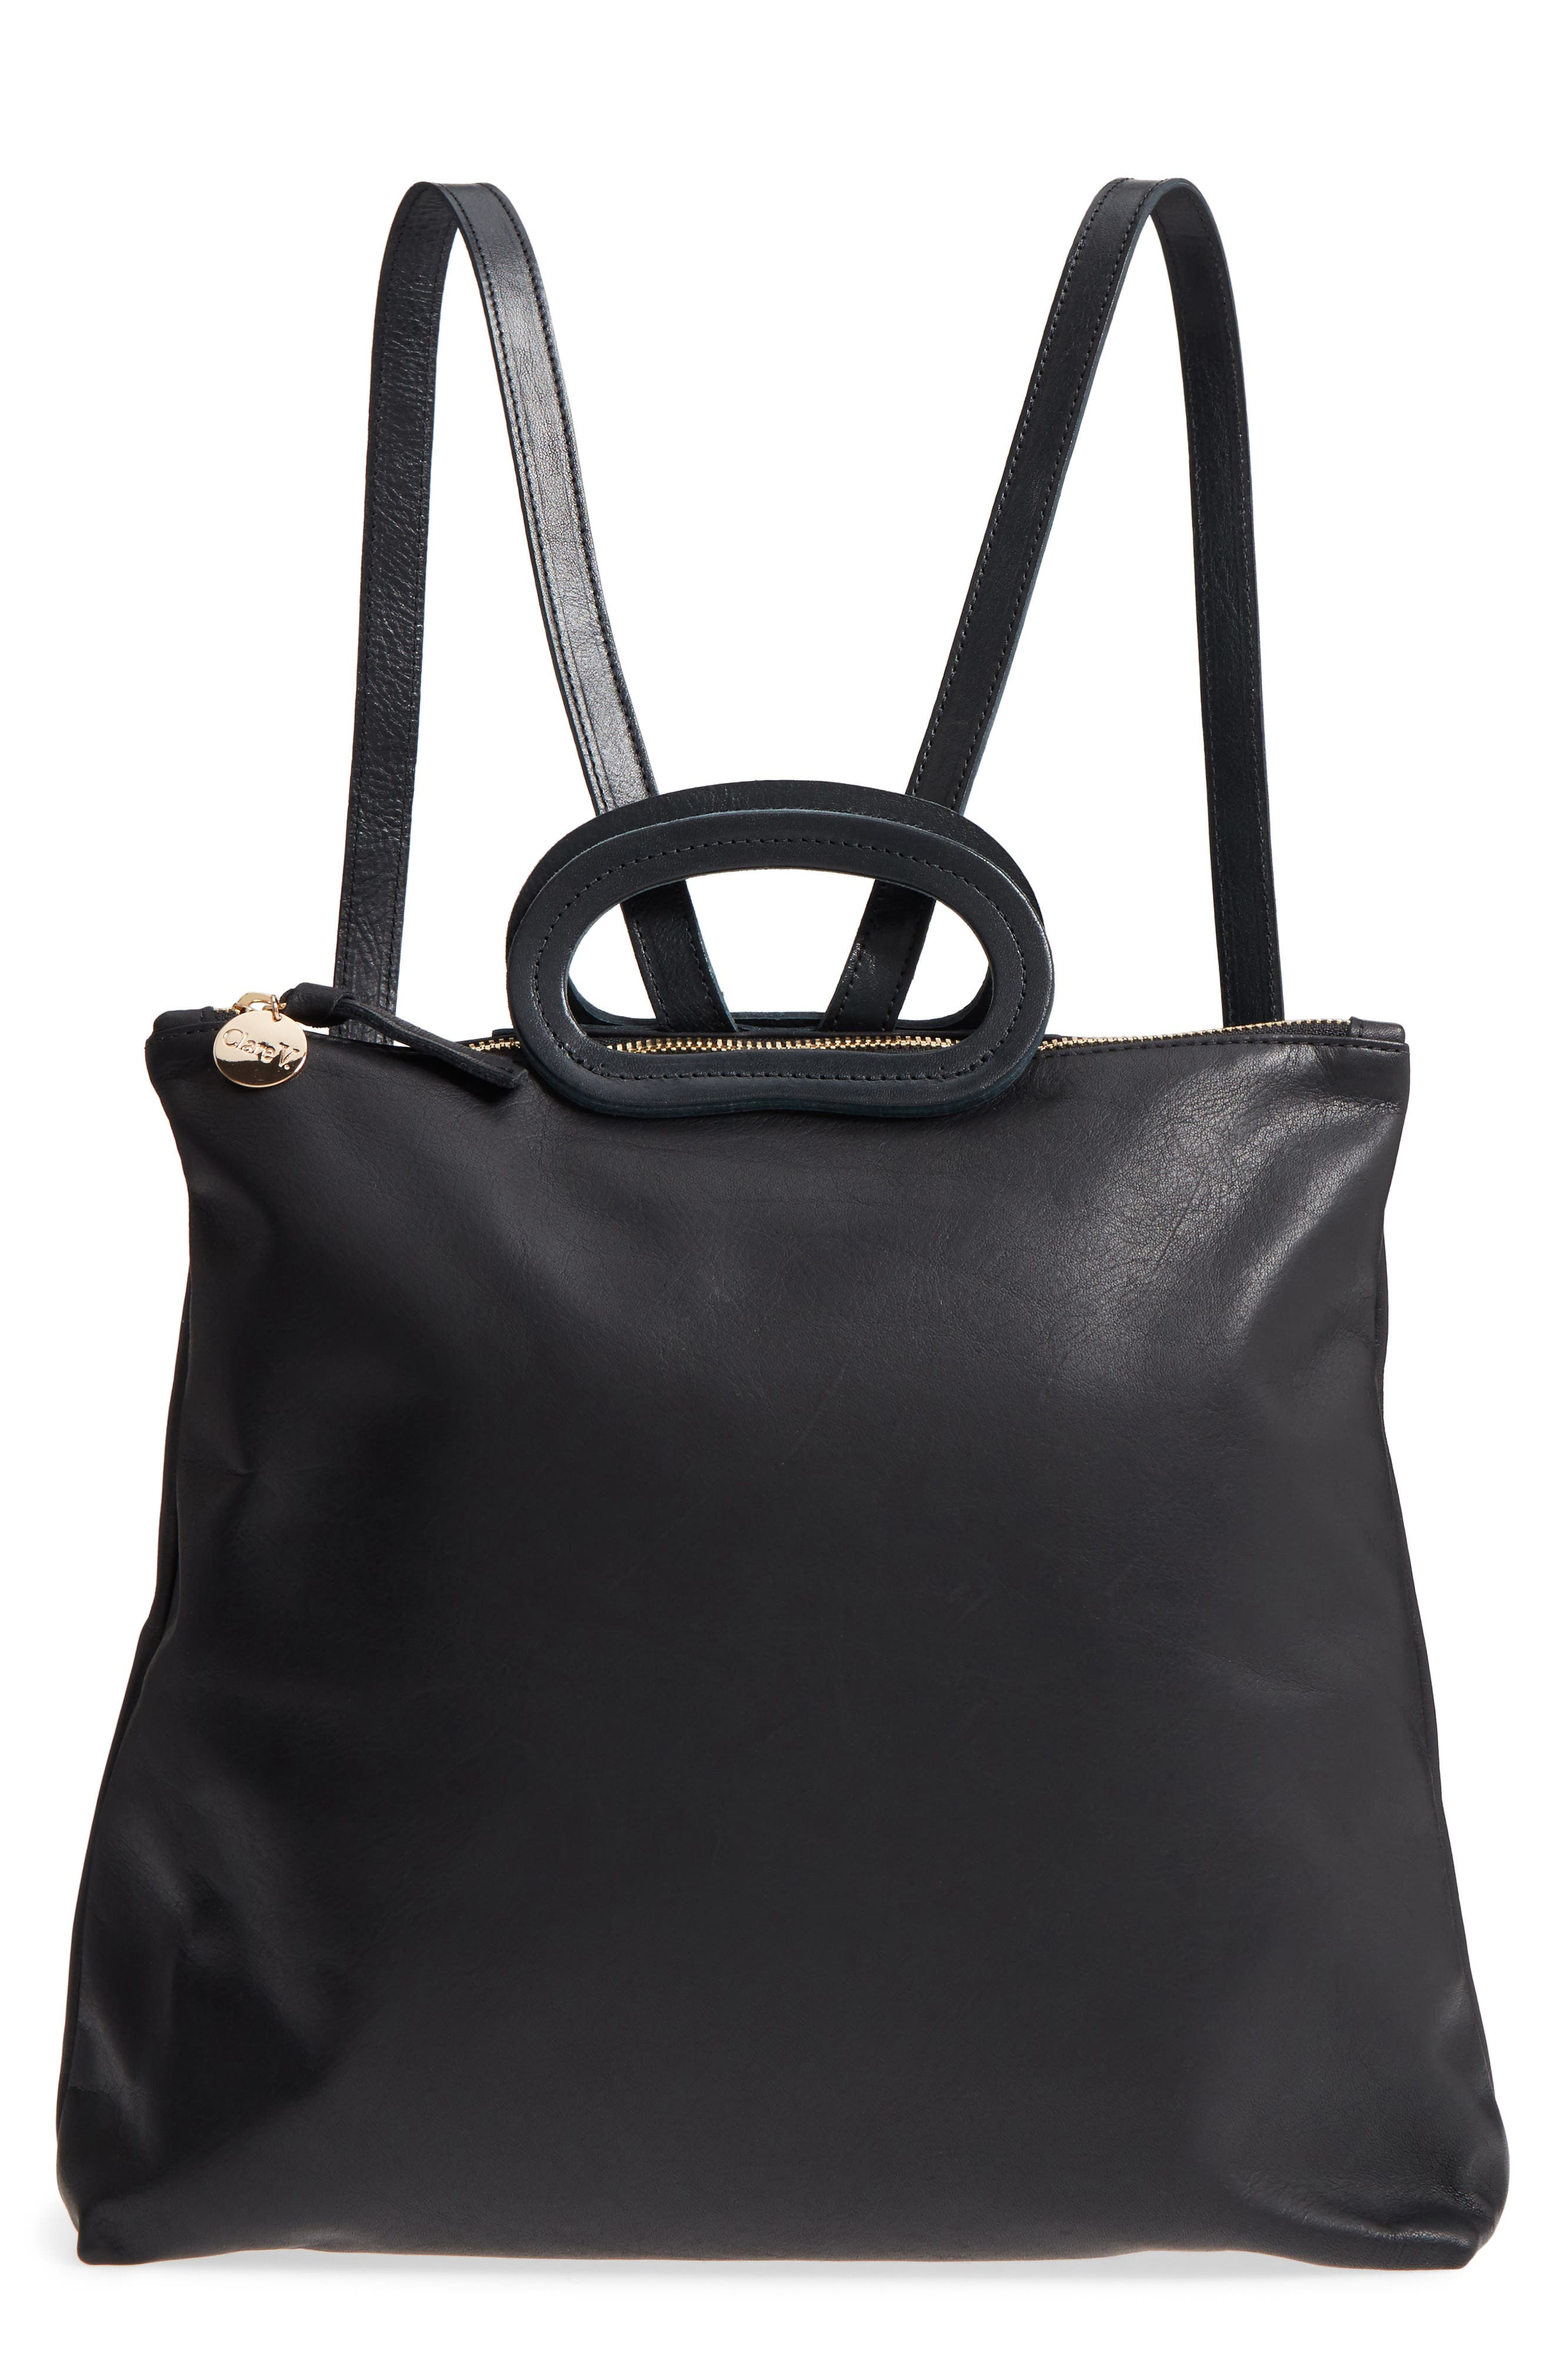 Marcelle Lambskin Leather Backpack,                             Main thumbnail 1, color,                             001